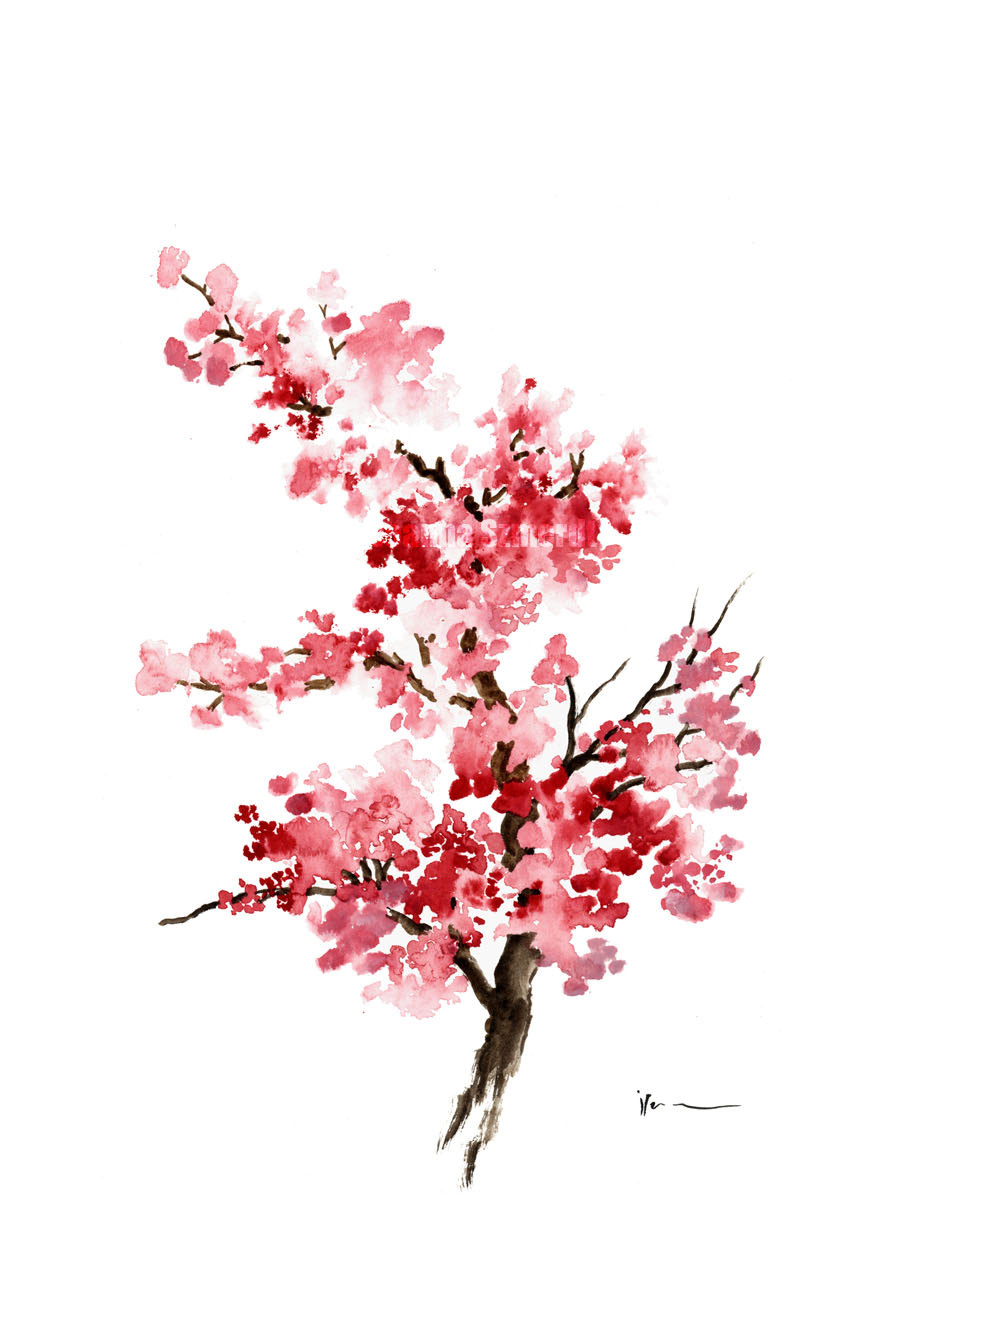 Drawn sakura blossom watercolor Best Illustration Gifts 3 Painting